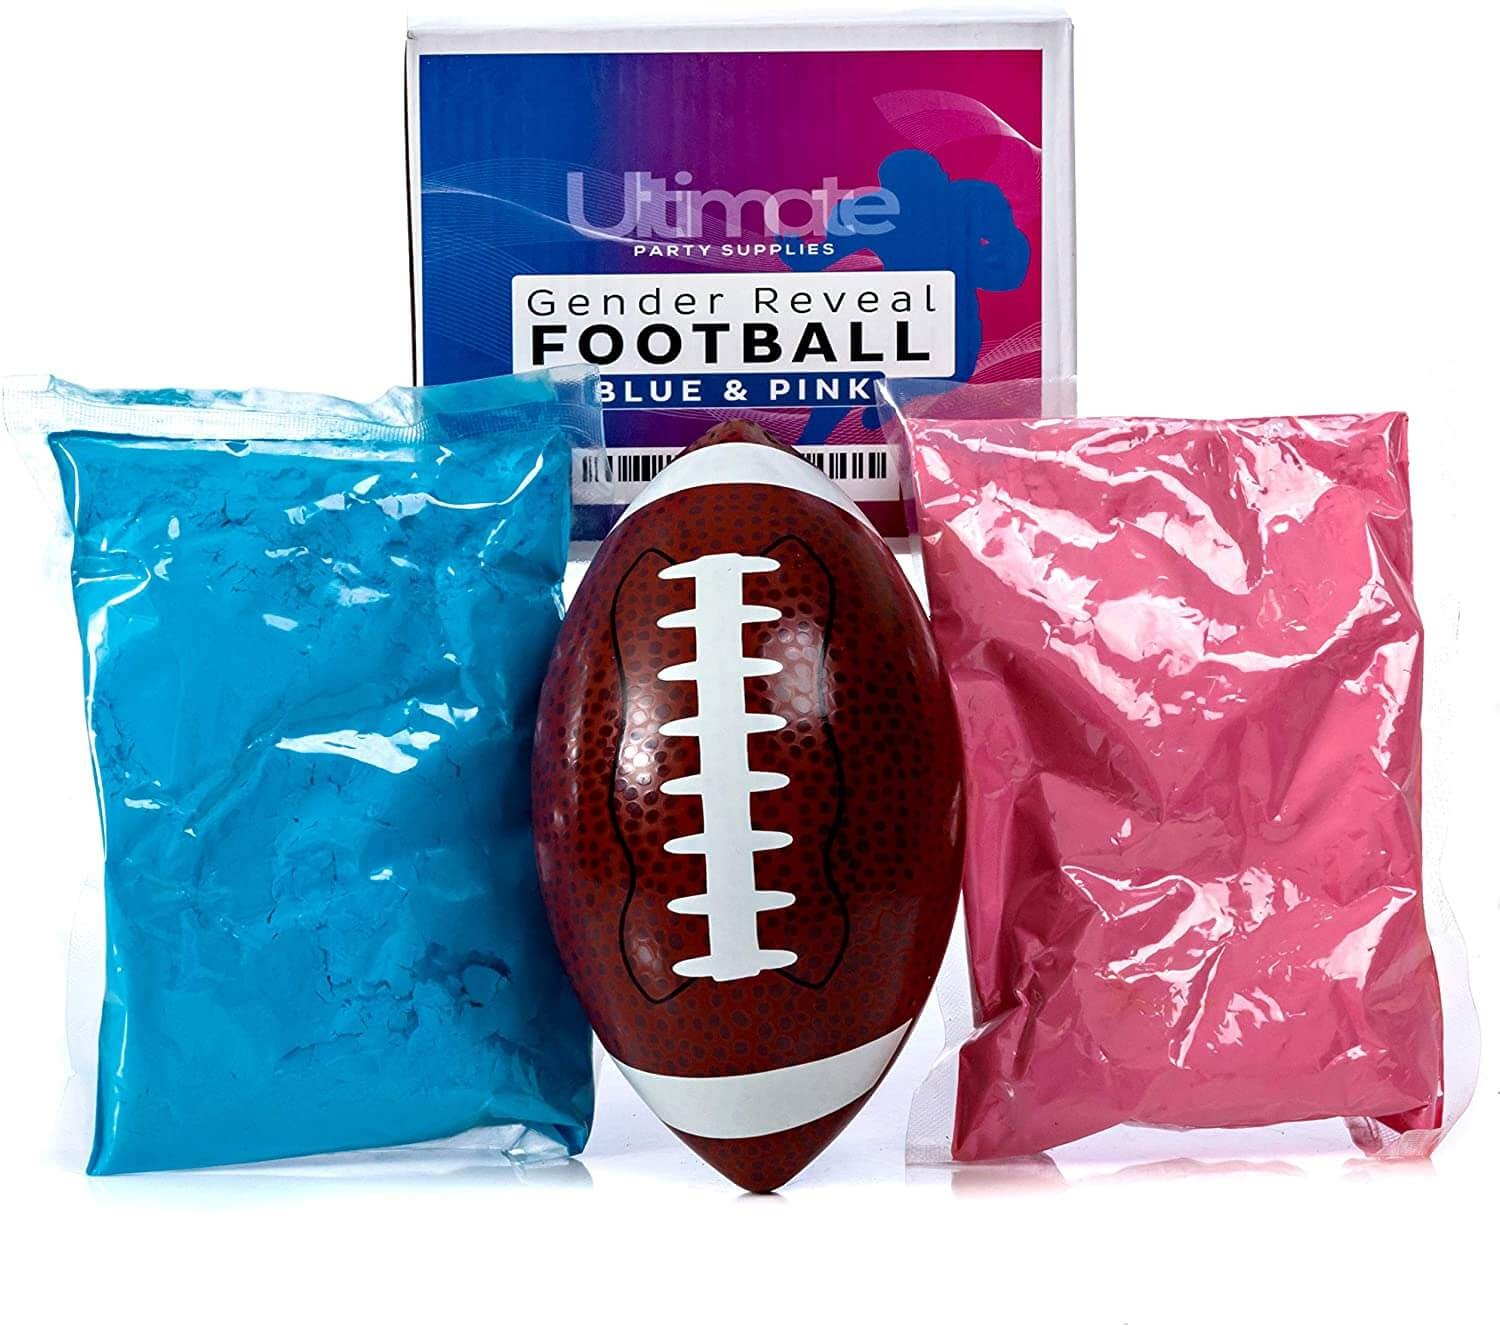 Powdered filled football